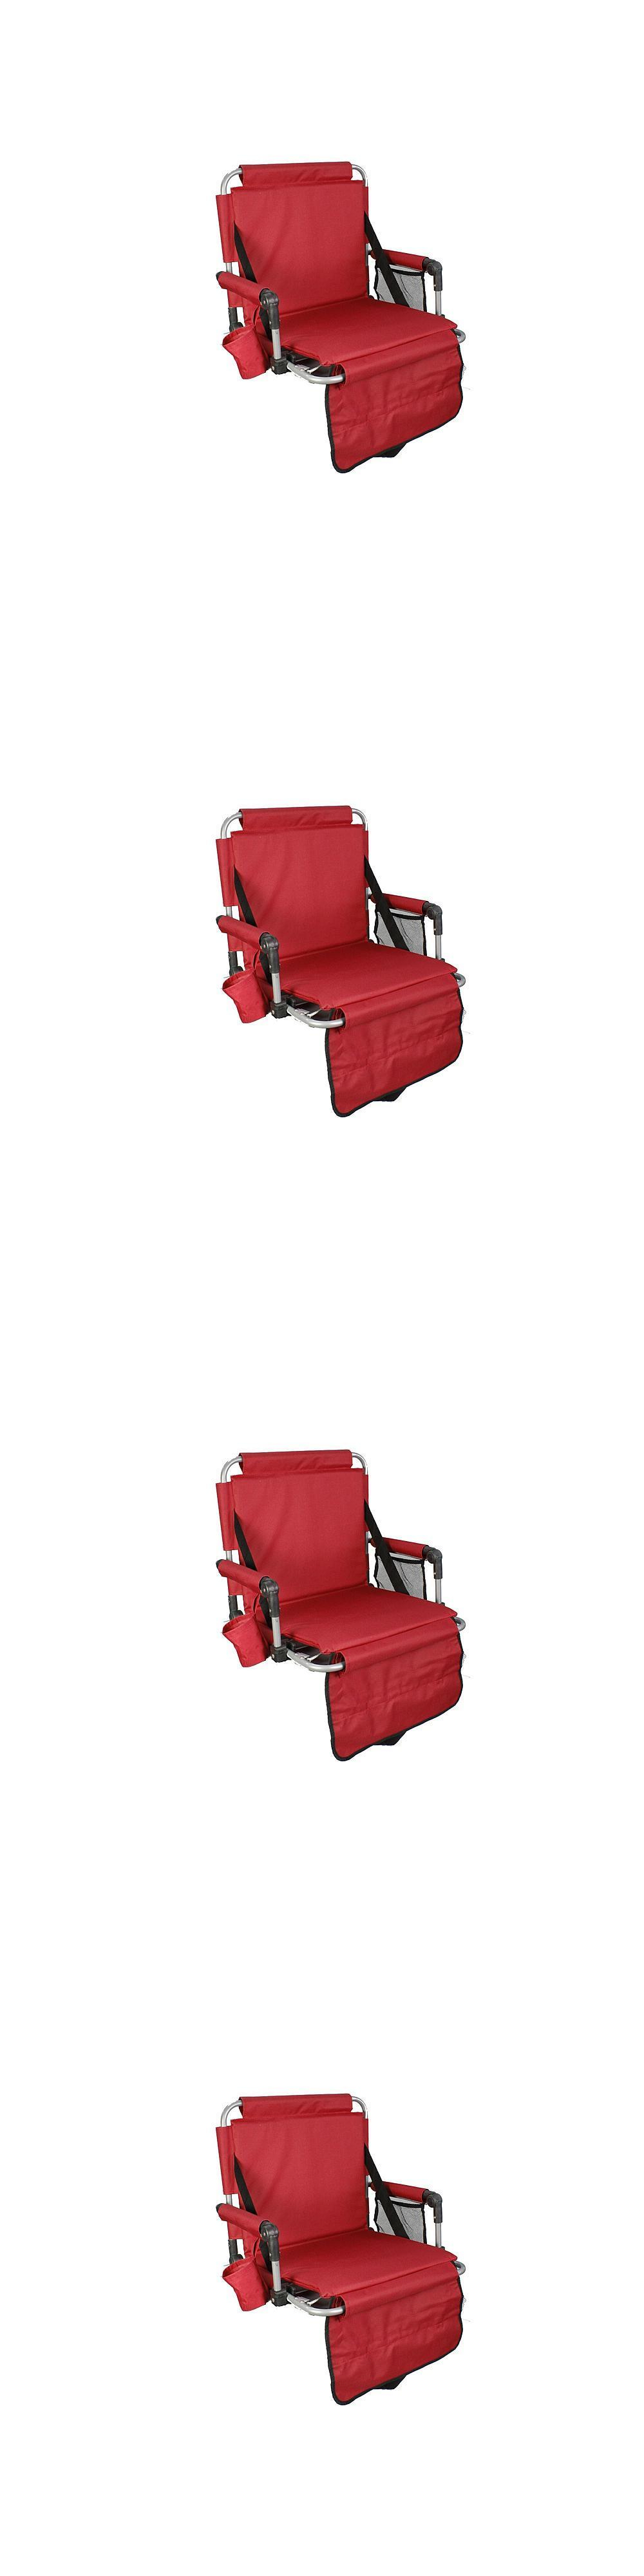 Other Outdoor Sports Portable Stadium Chair Arms Padded